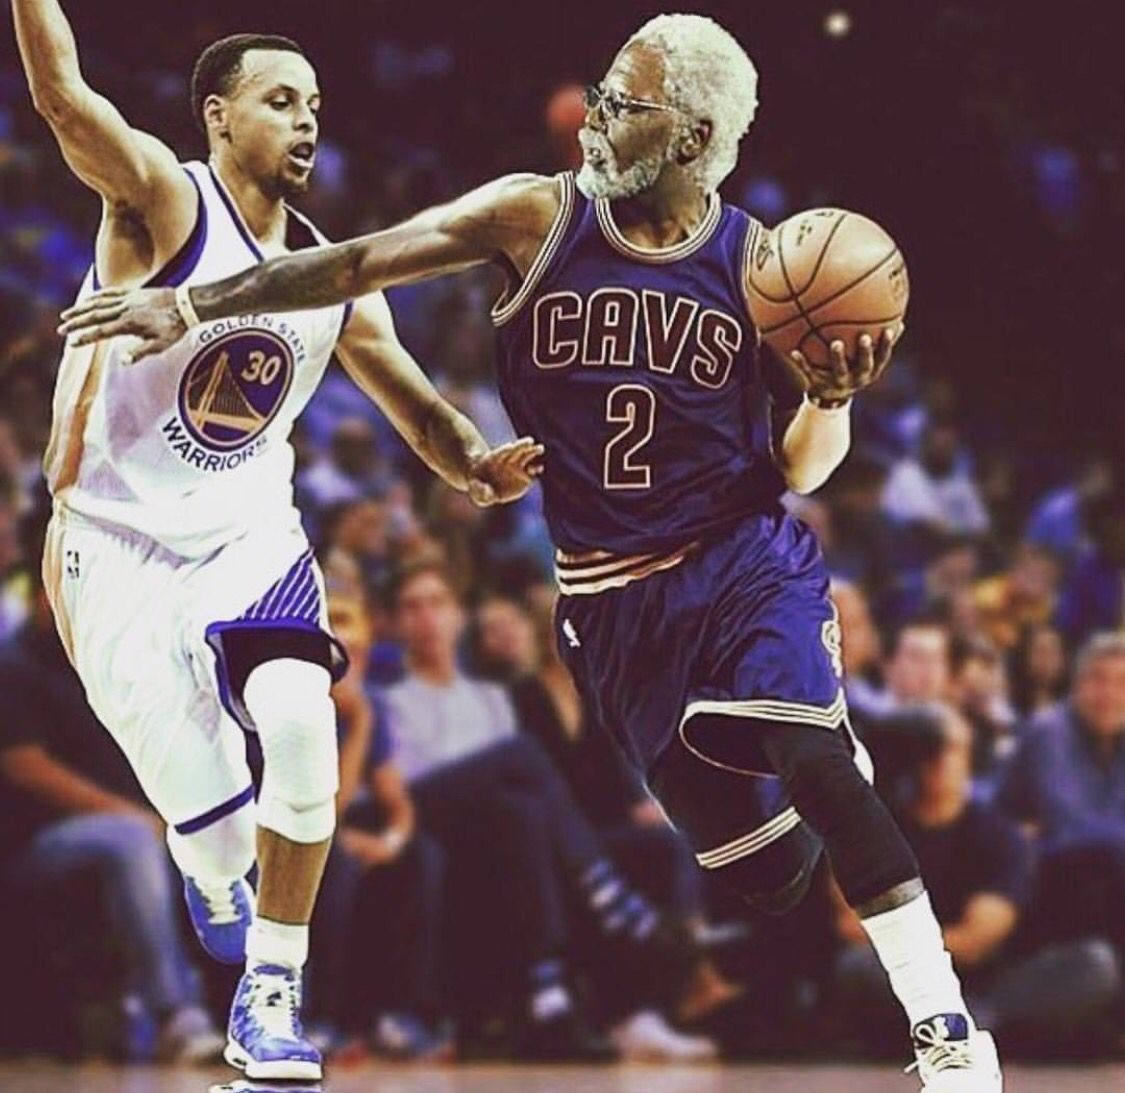 steph curry and uncle drew